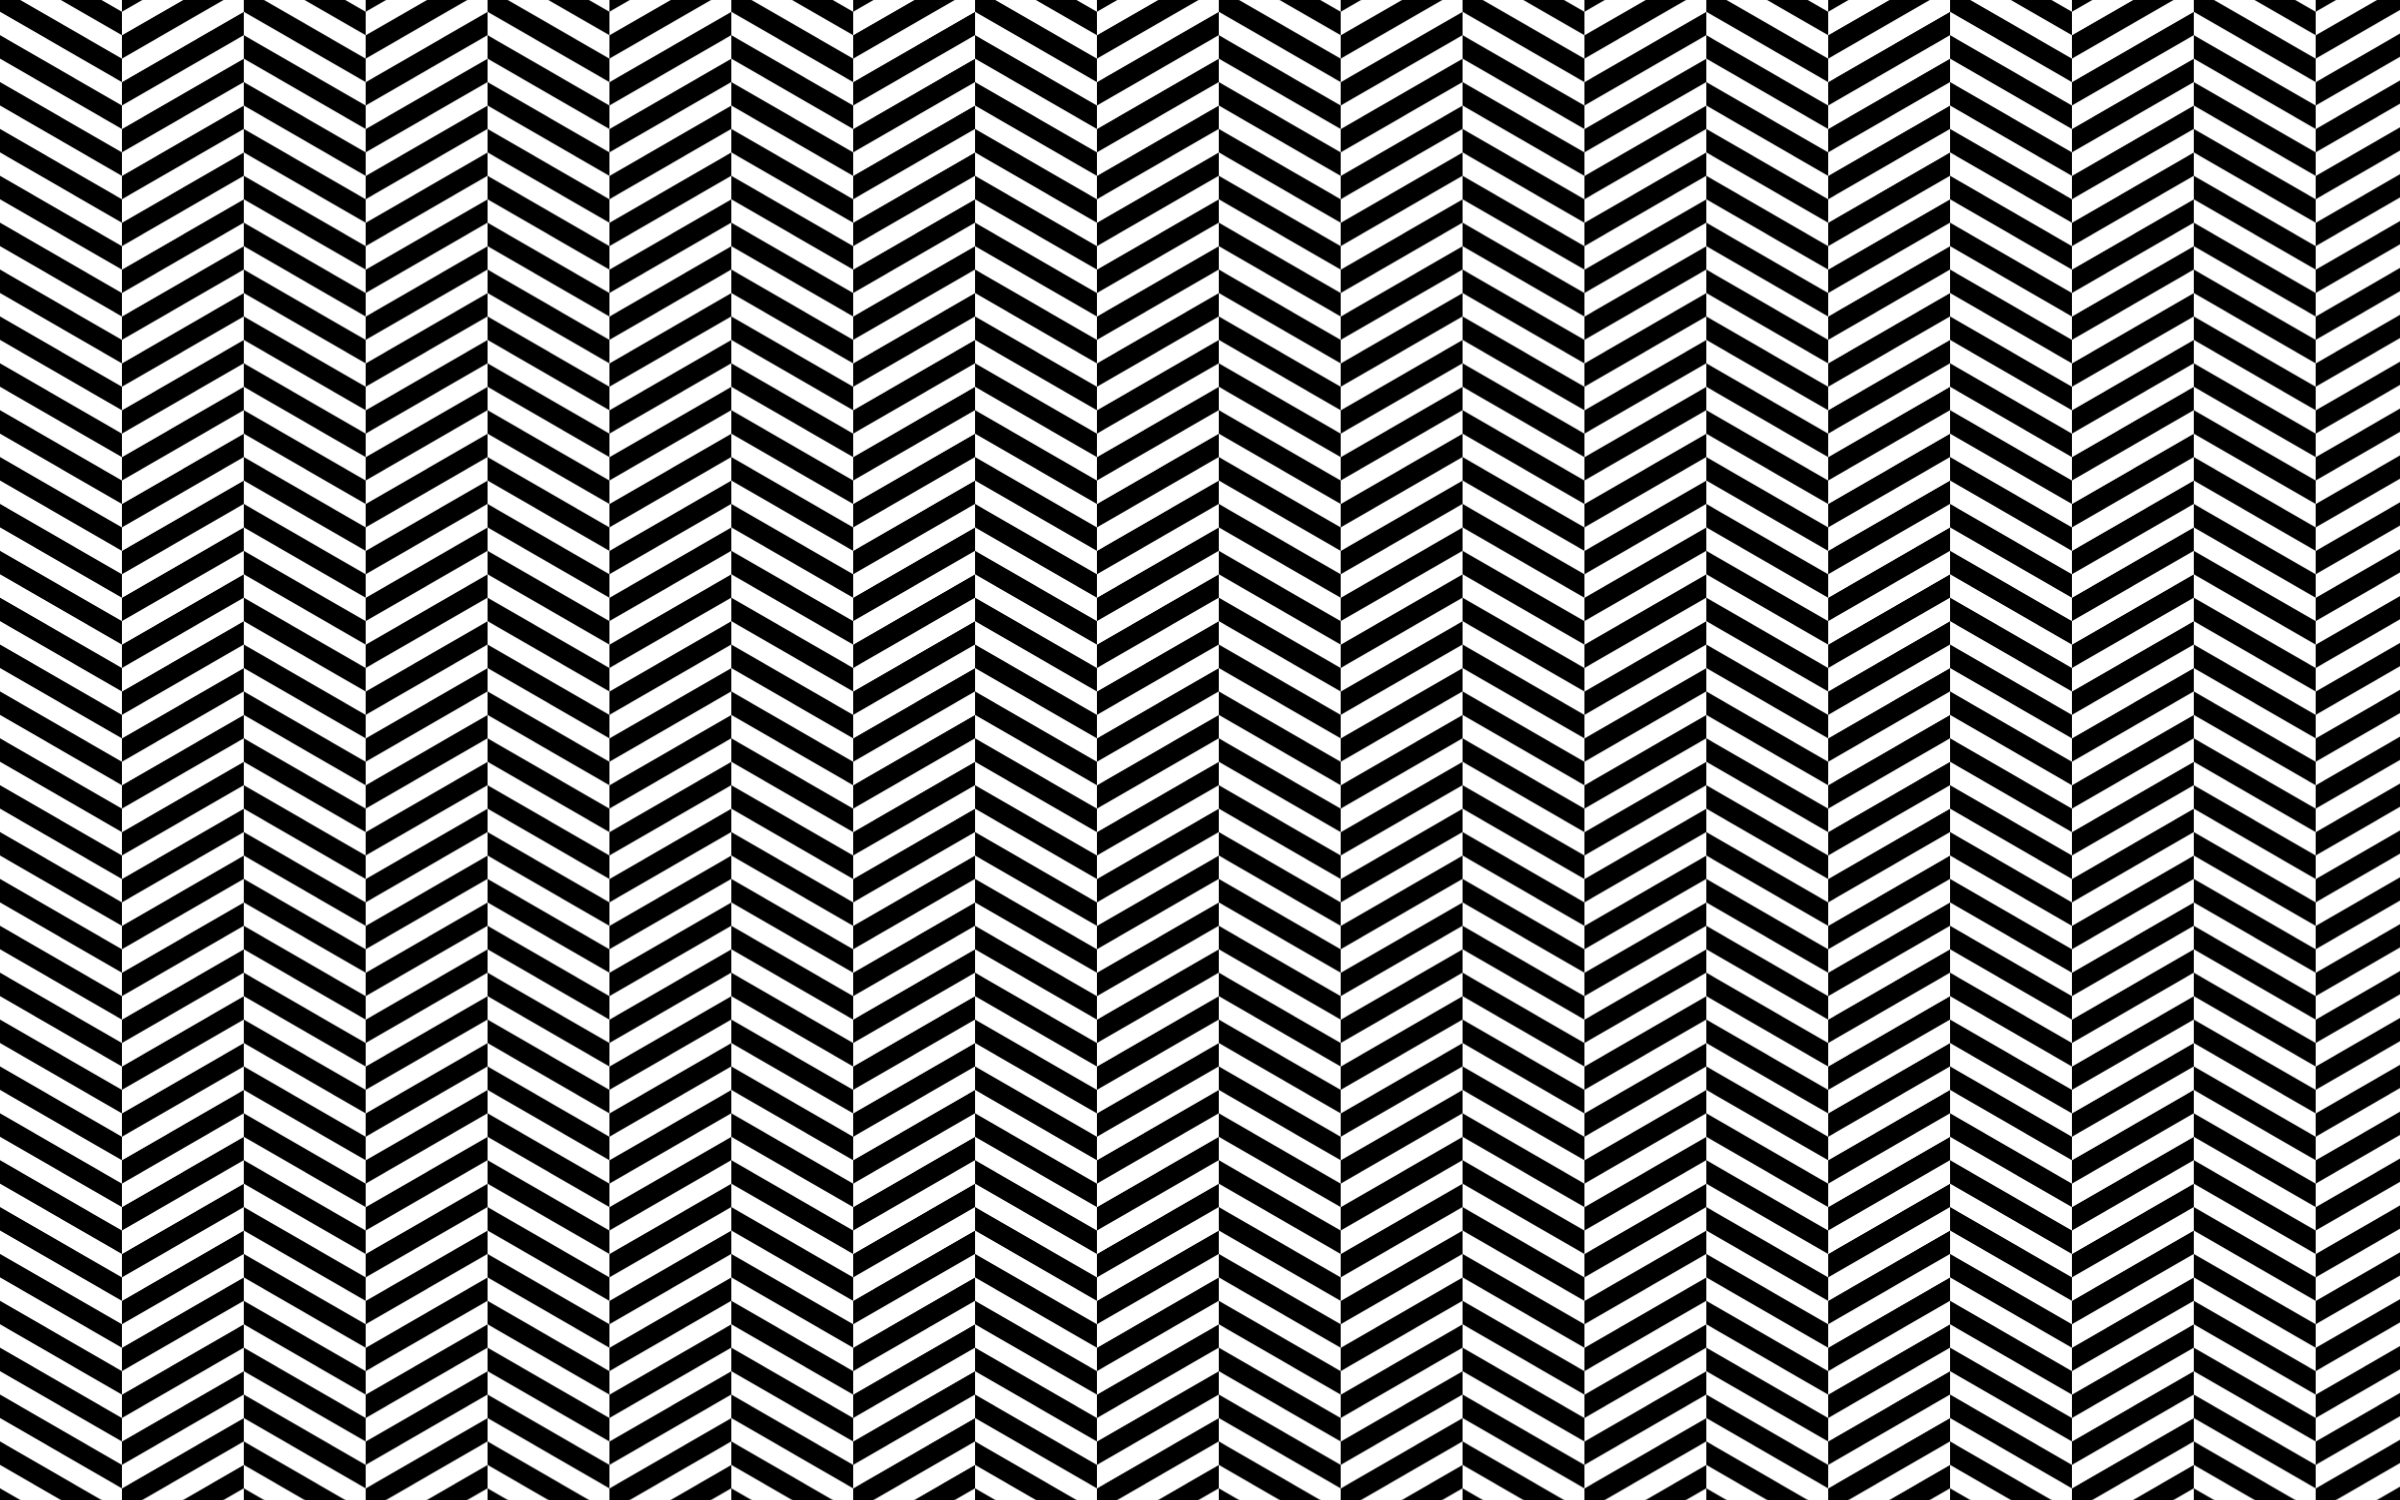 Seamless Herringbone Pattern 2 by GDJ